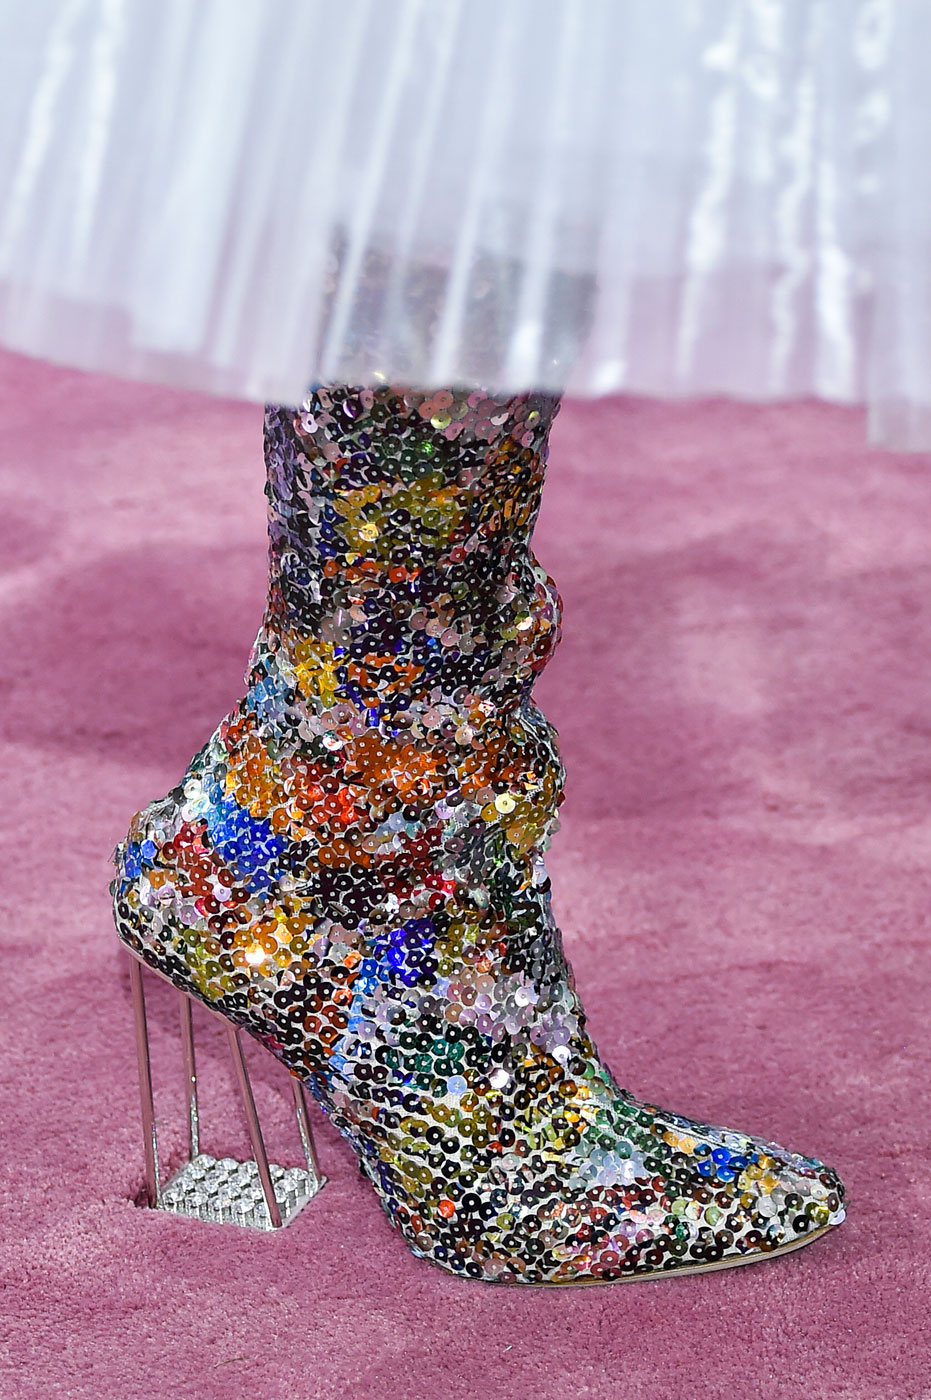 Christian-Dior-fashion-runway-show-close-ups-haute-couture-paris-spring-summer-2015-the-impression-150